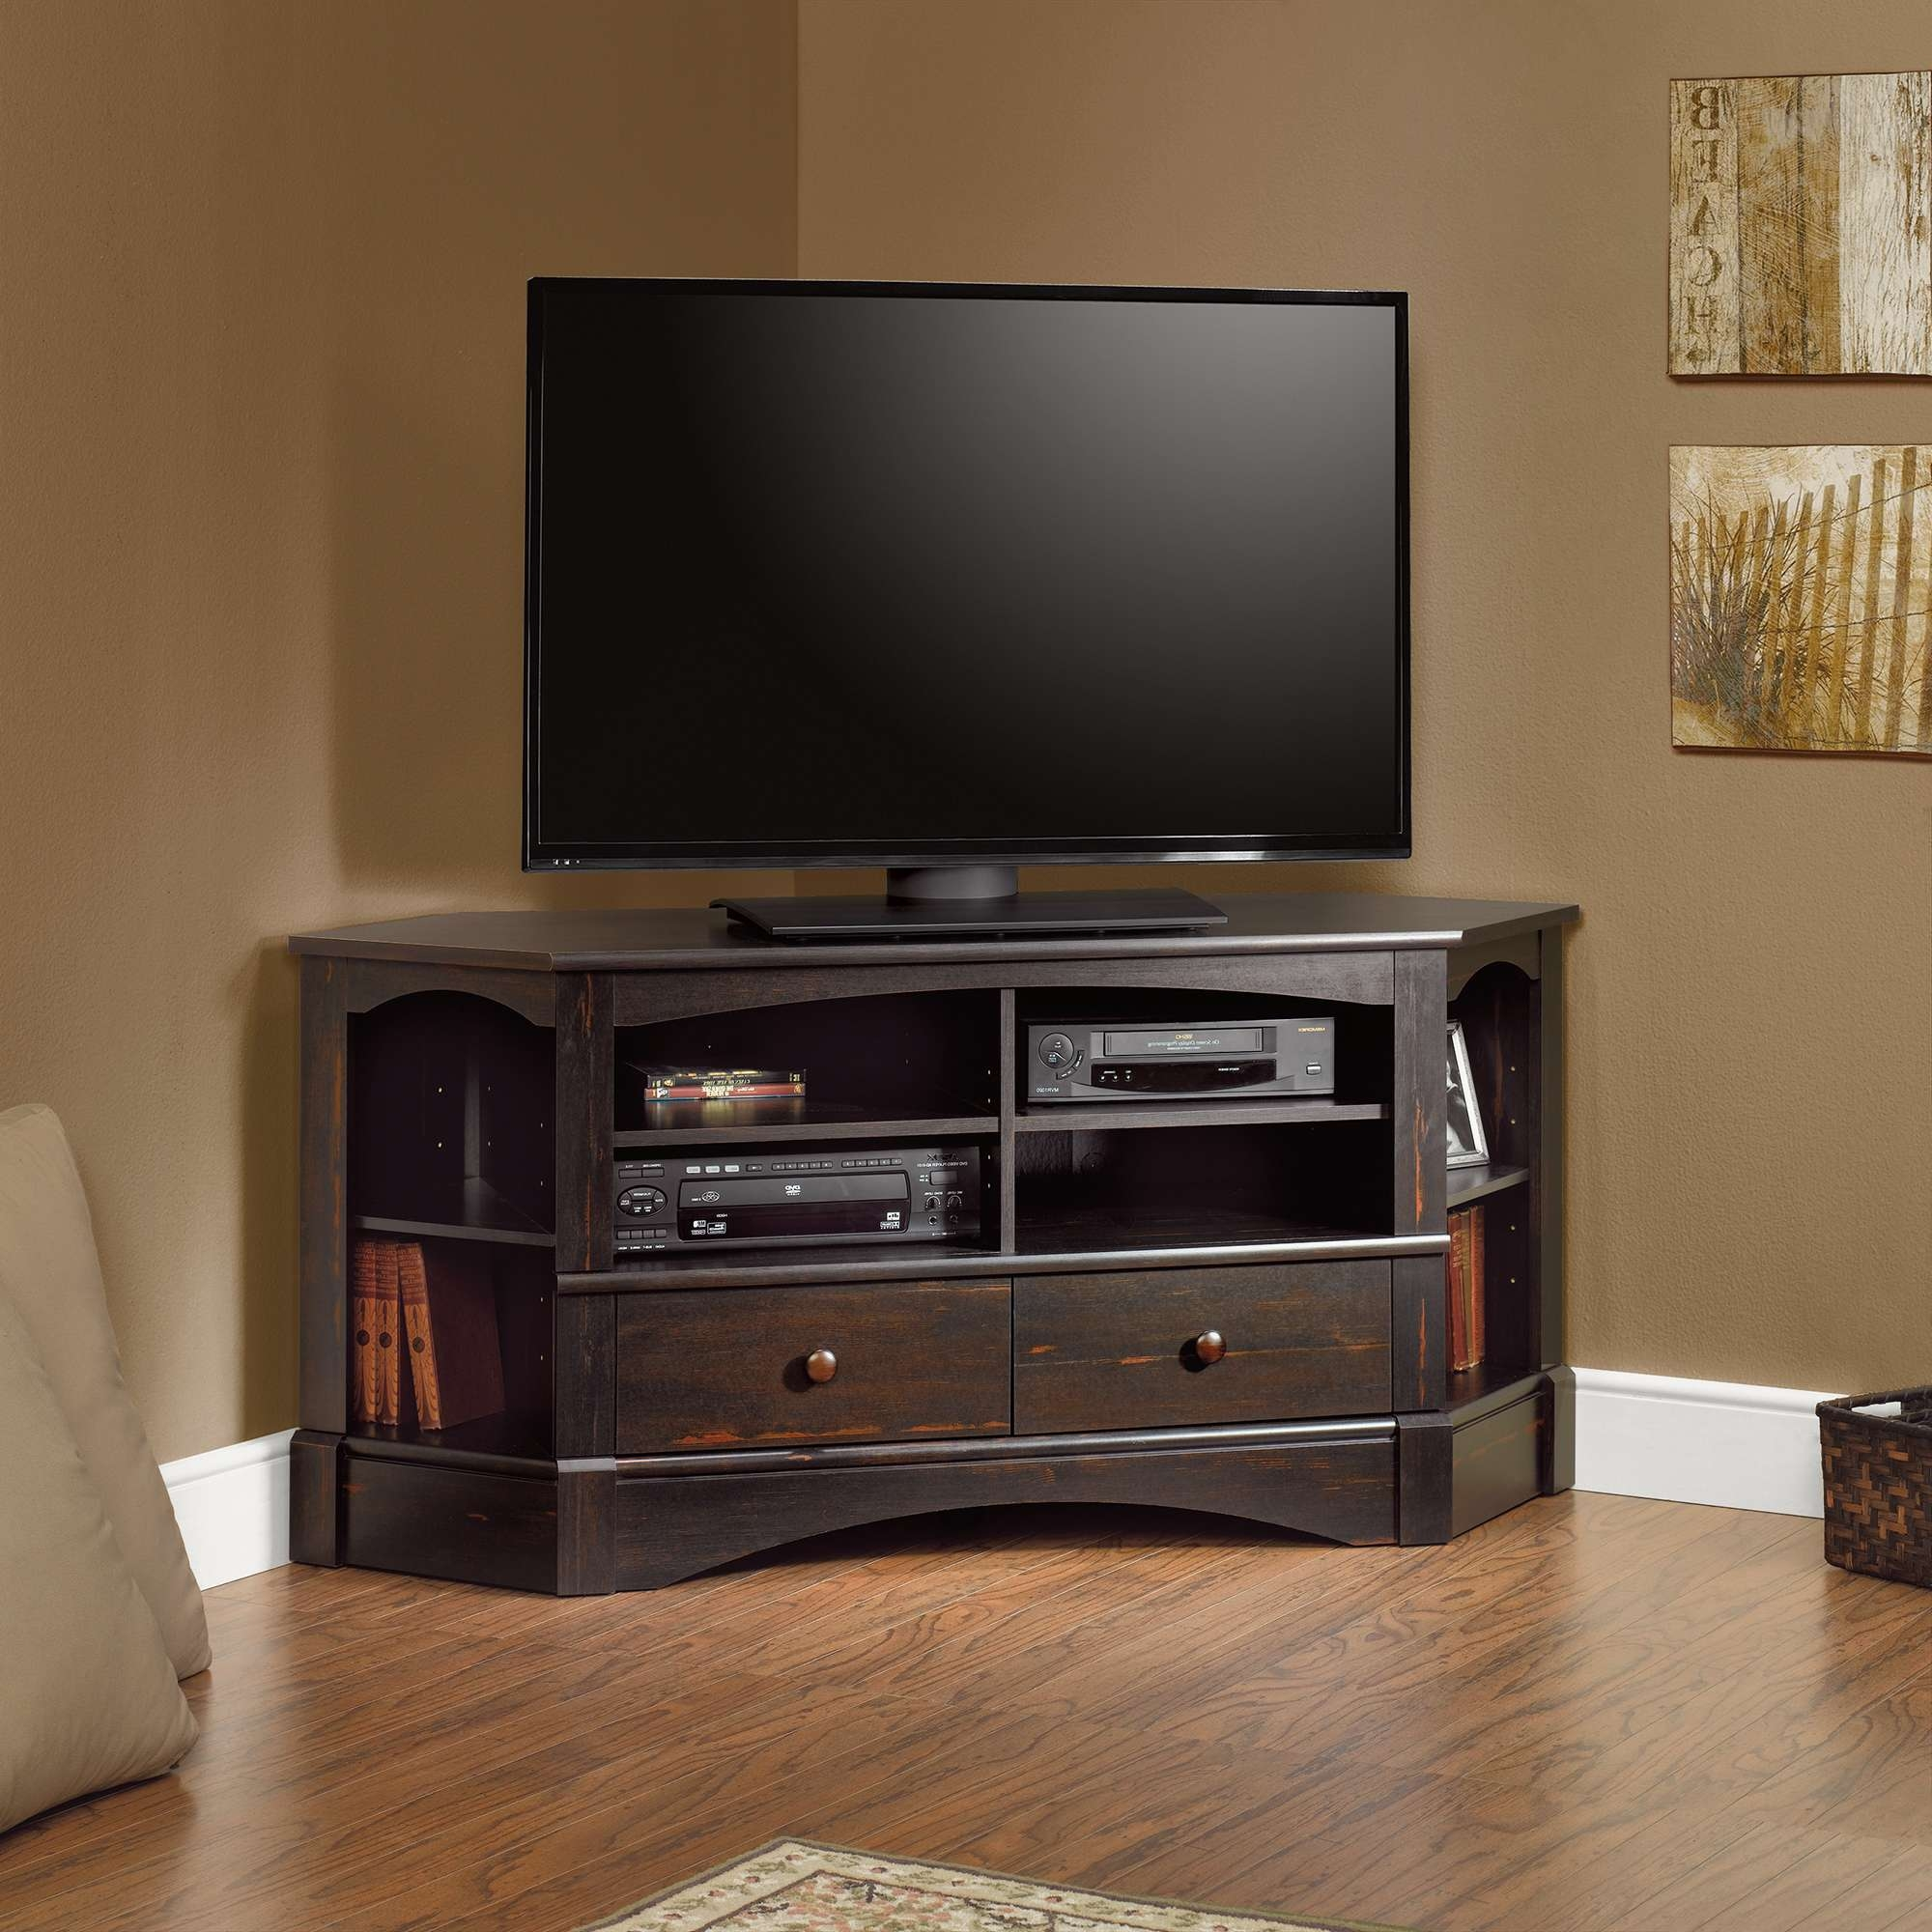 Harbor View | Corner Entertainment Credenza | 402902 | Sauder Throughout Large Corner Tv Cabinets (View 11 of 20)